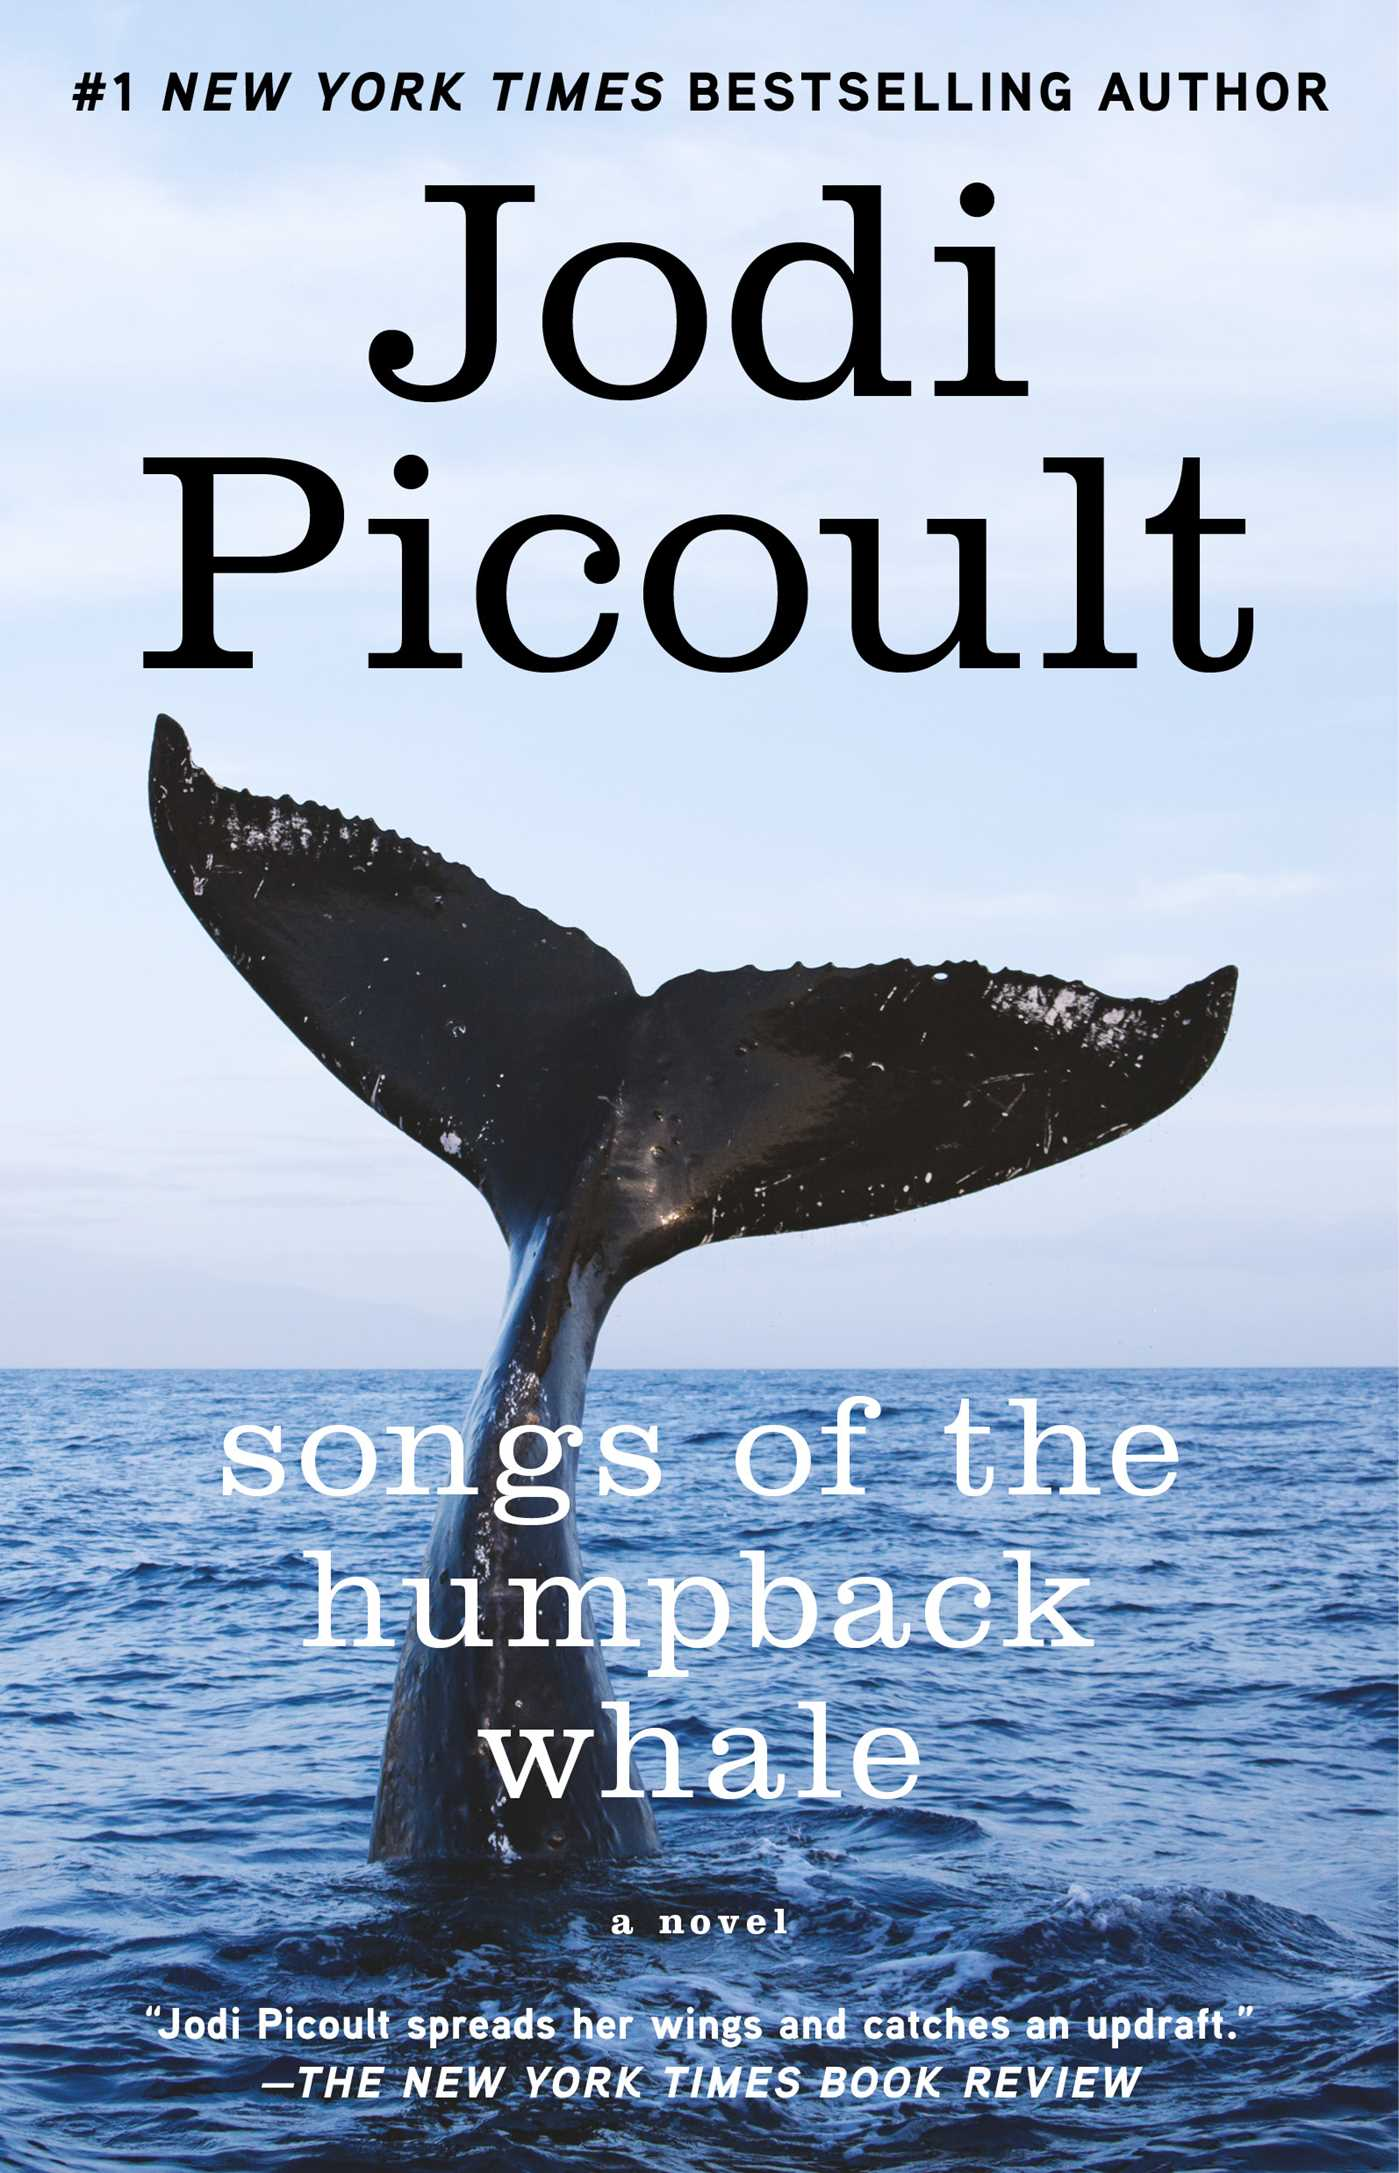 Songs-of-the-humpback-whale-9780743439848_hr